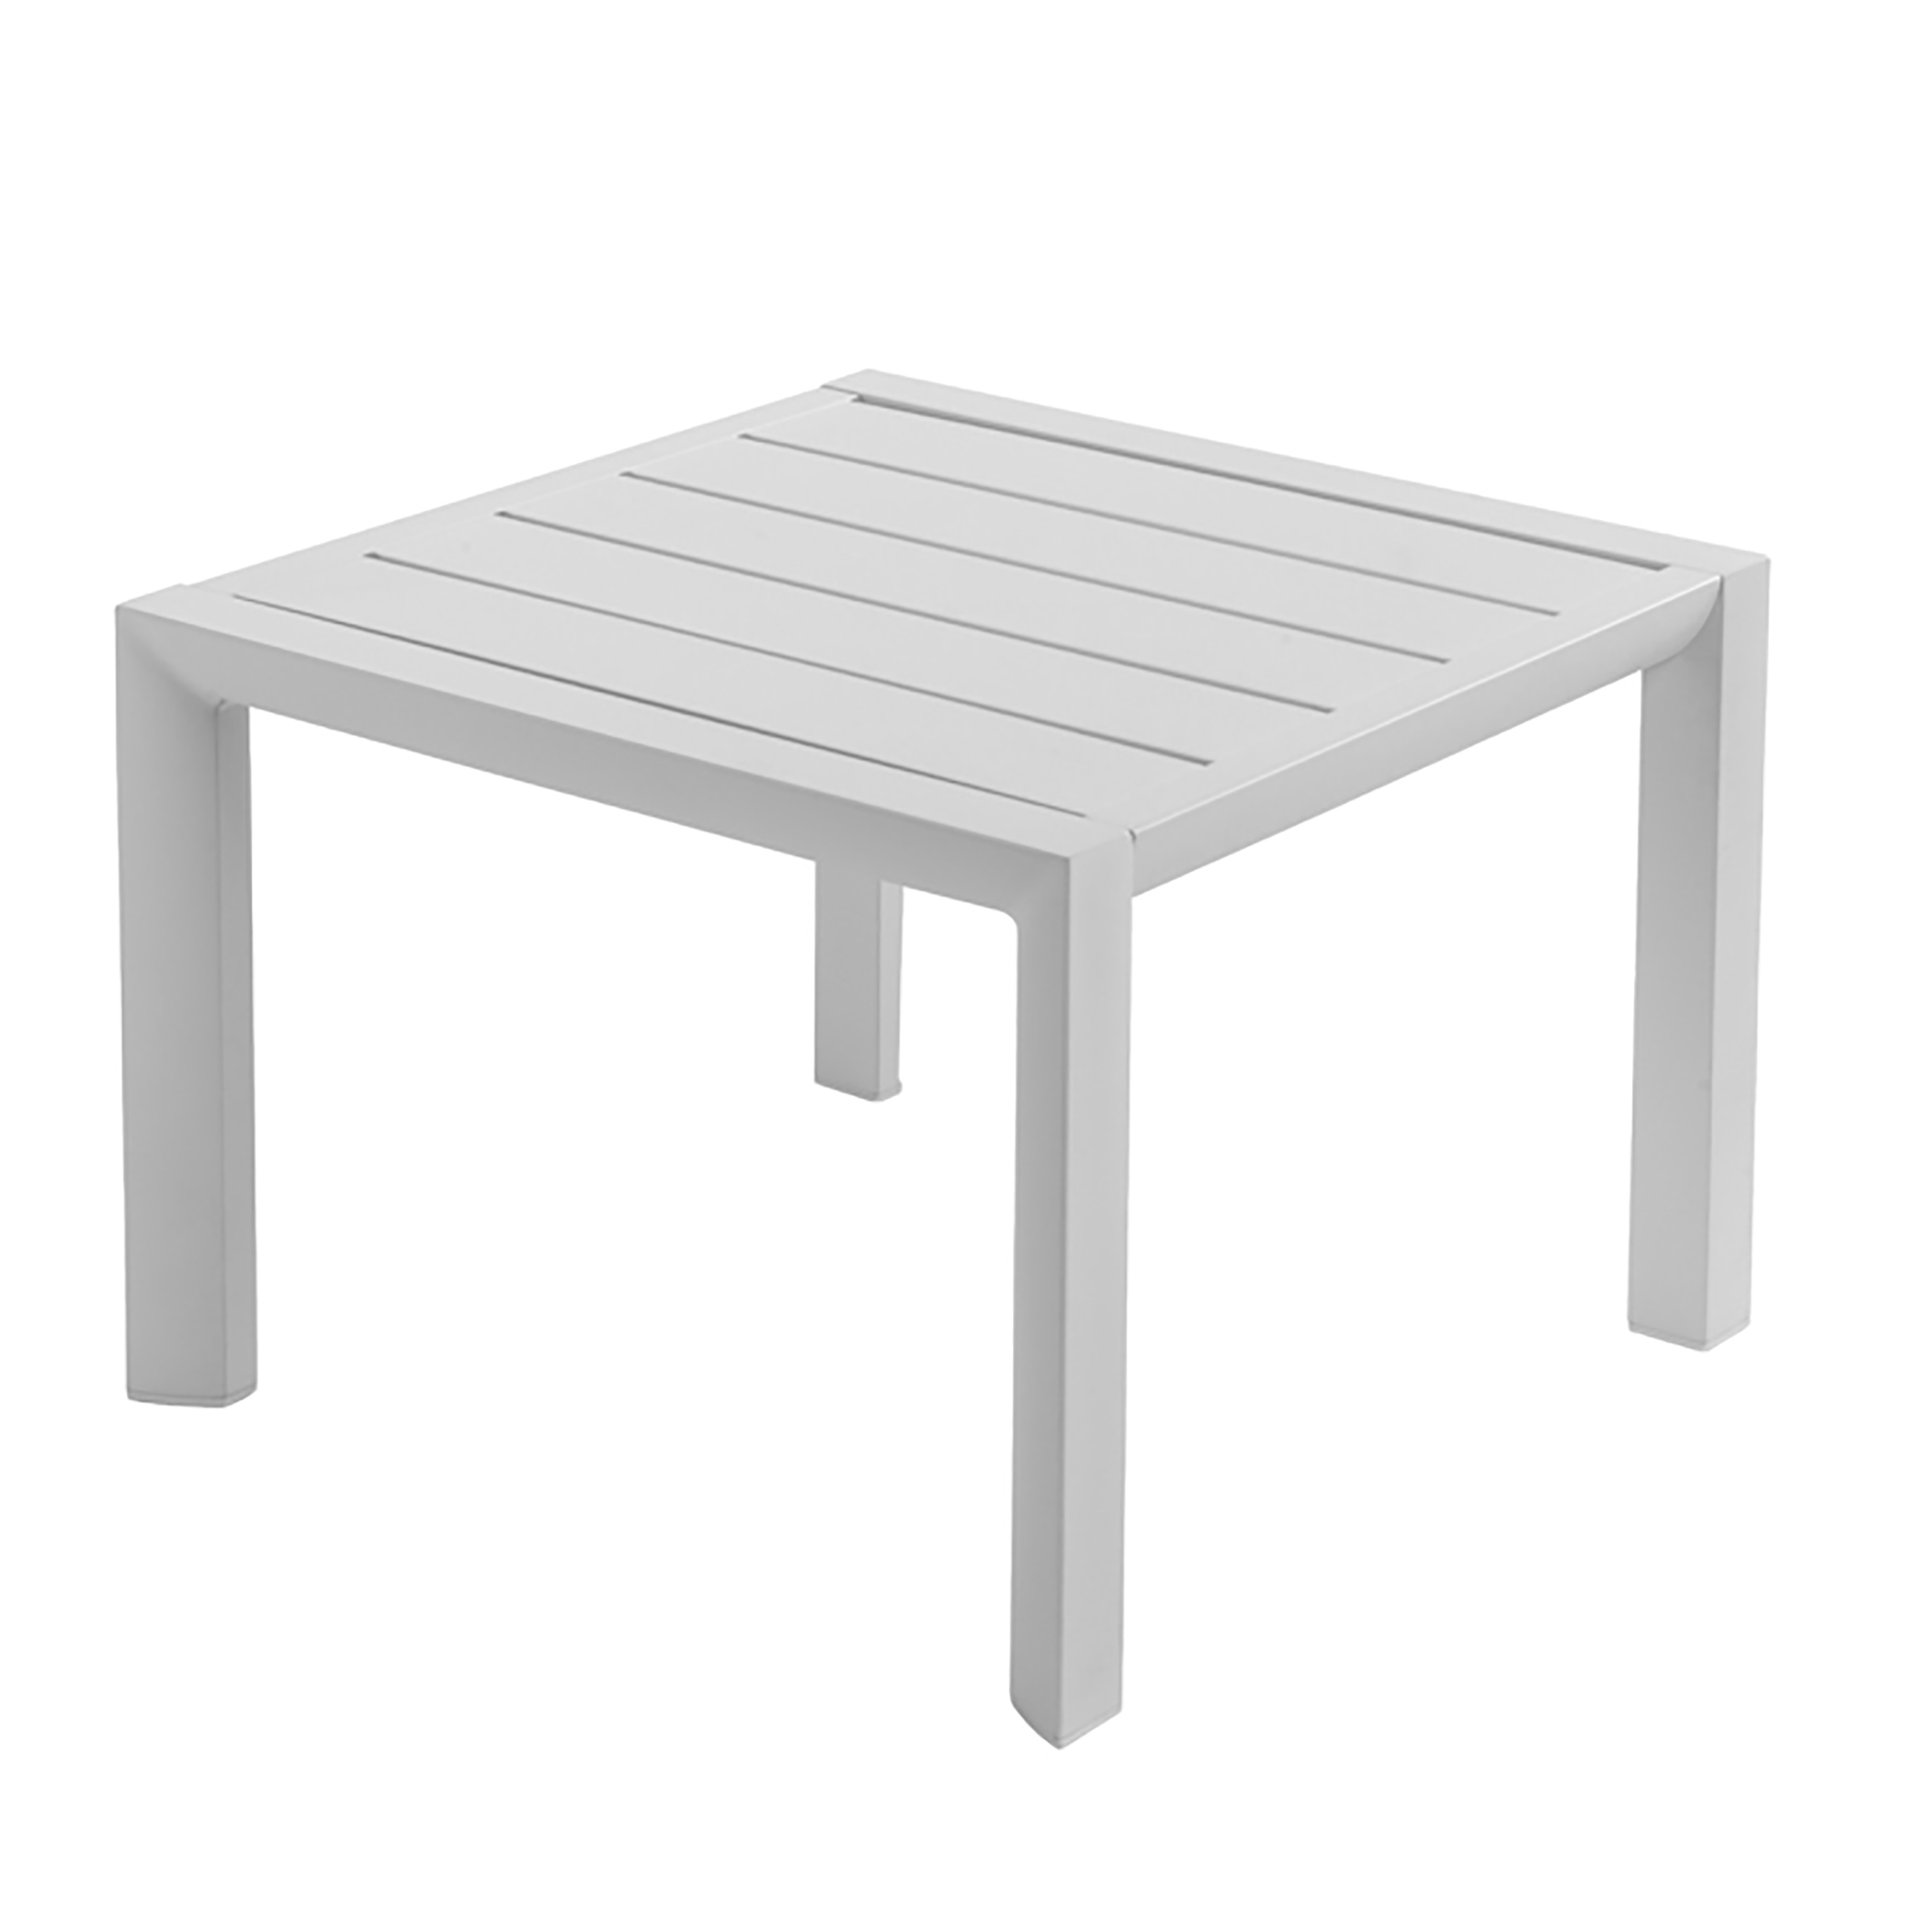 Grosfillex US040096 table, outdoor